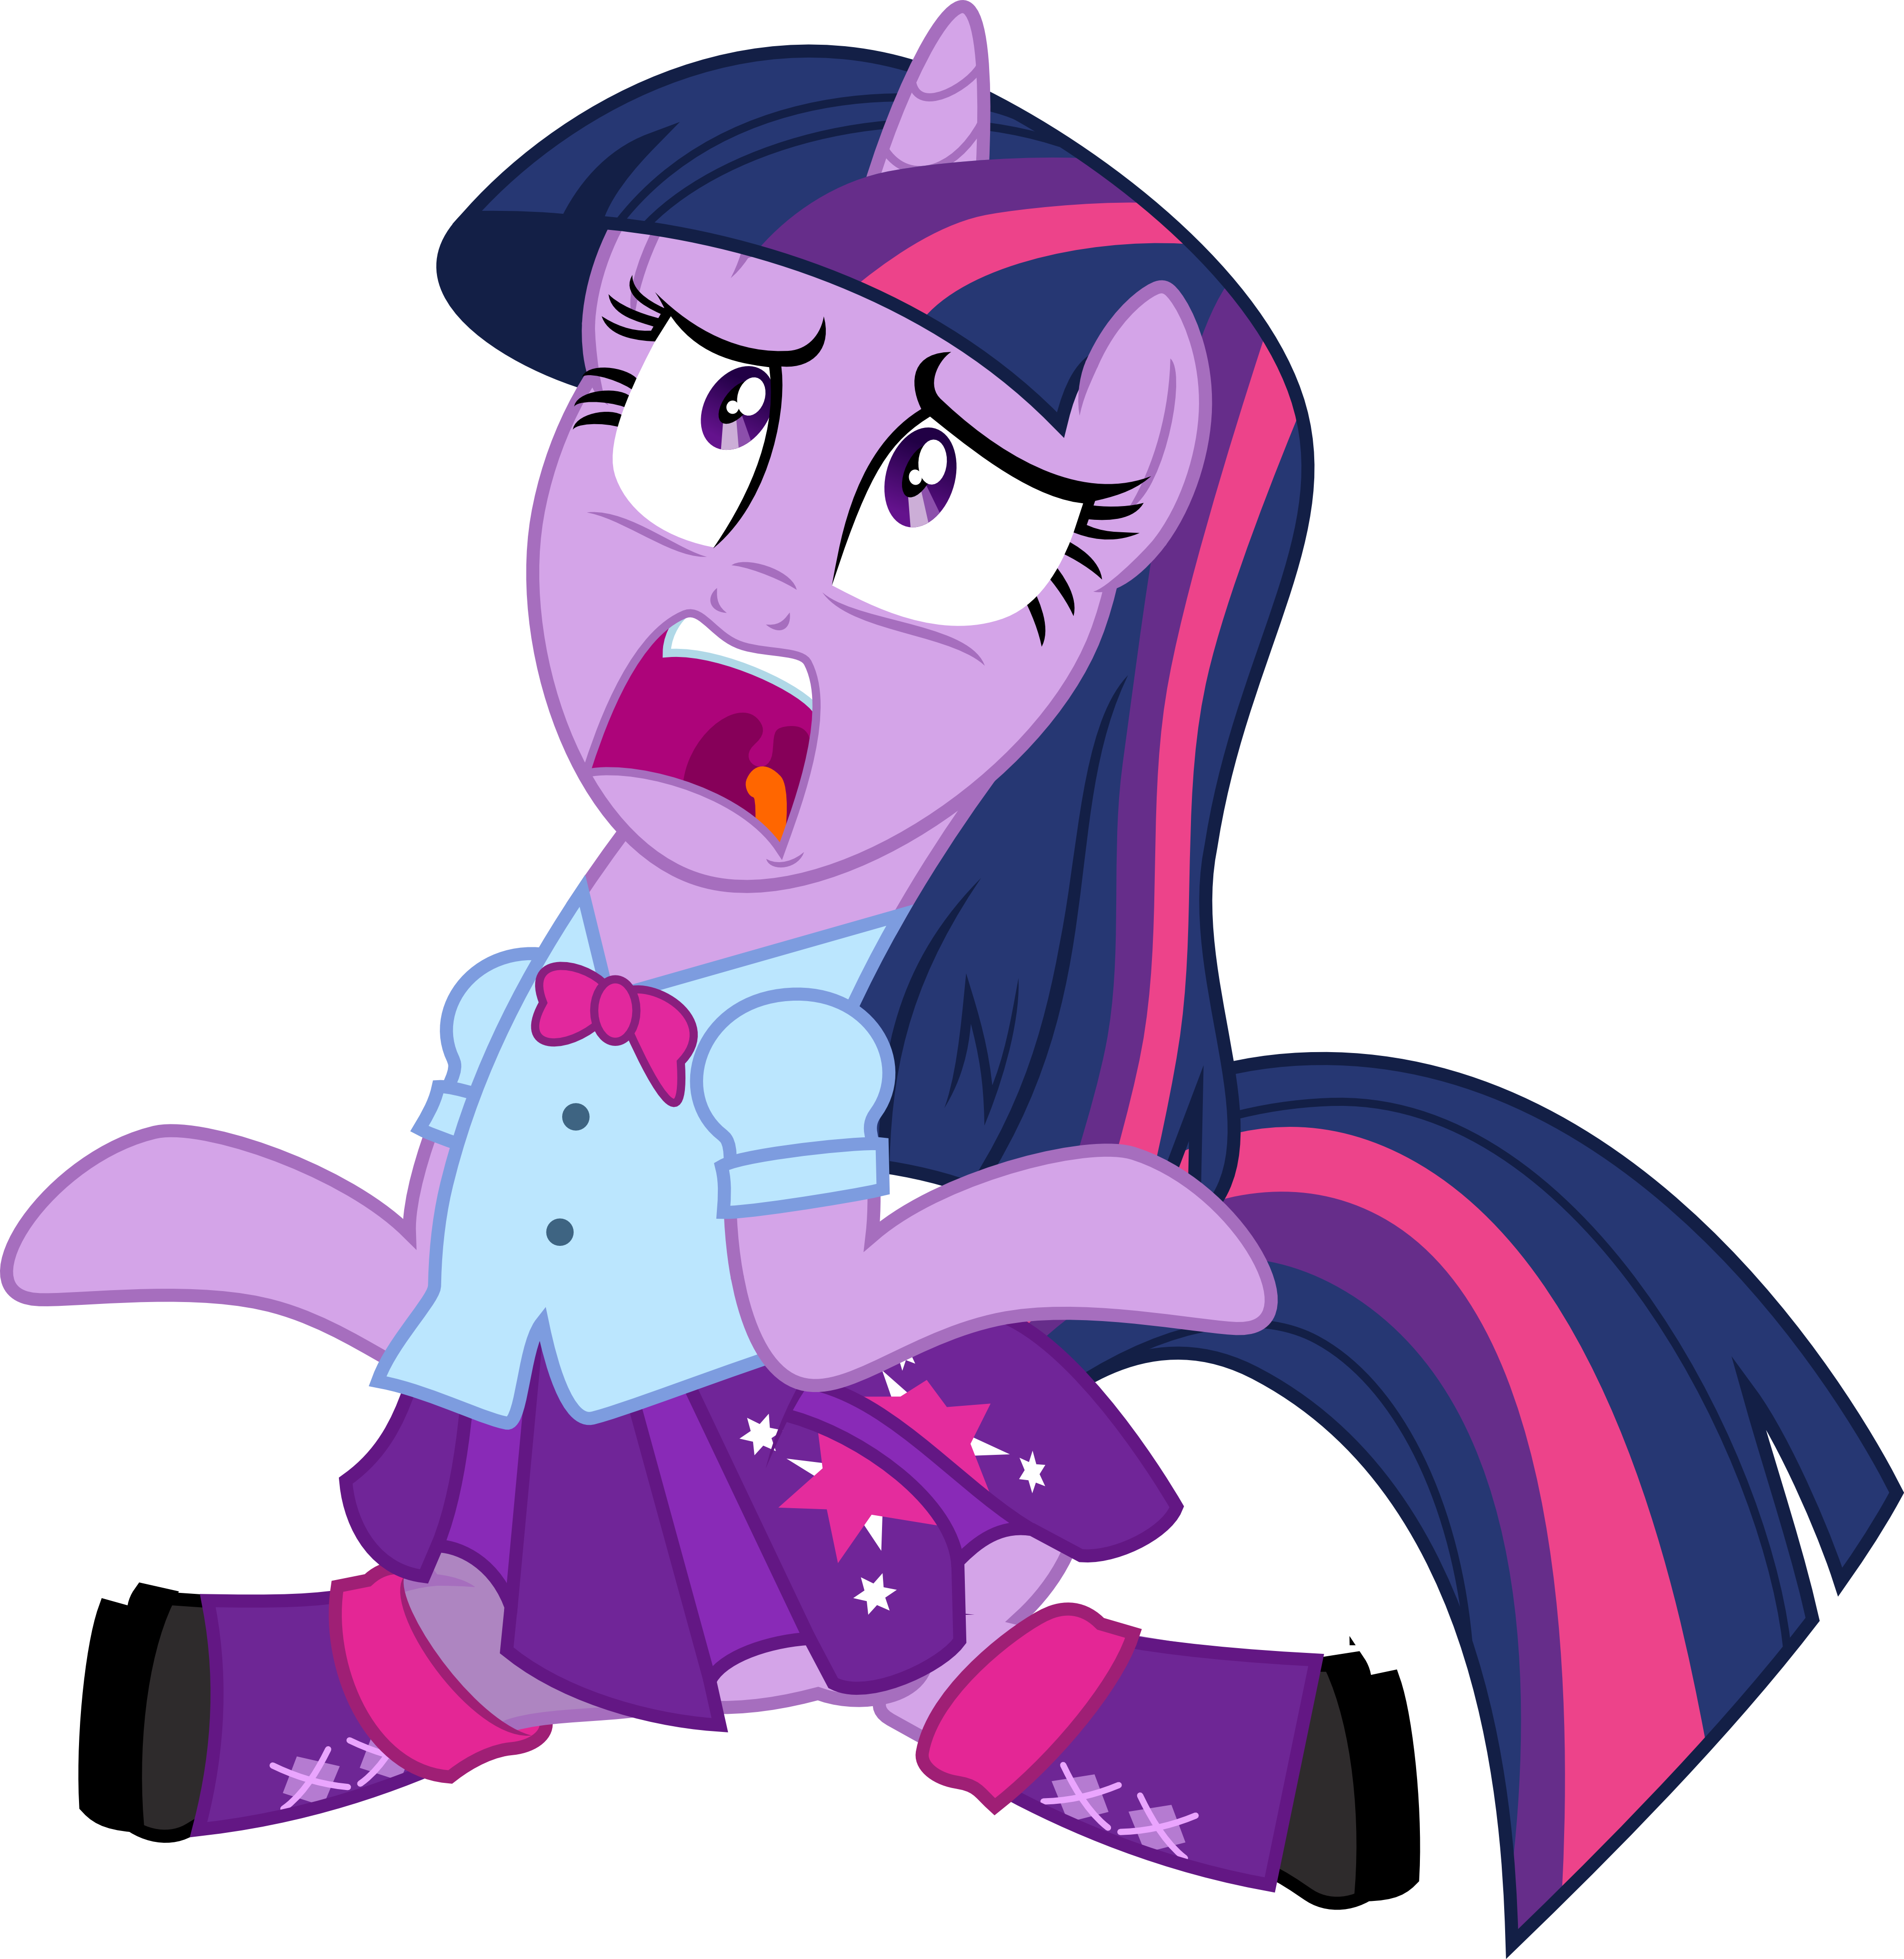 twilight sparkle equestria girls outfit